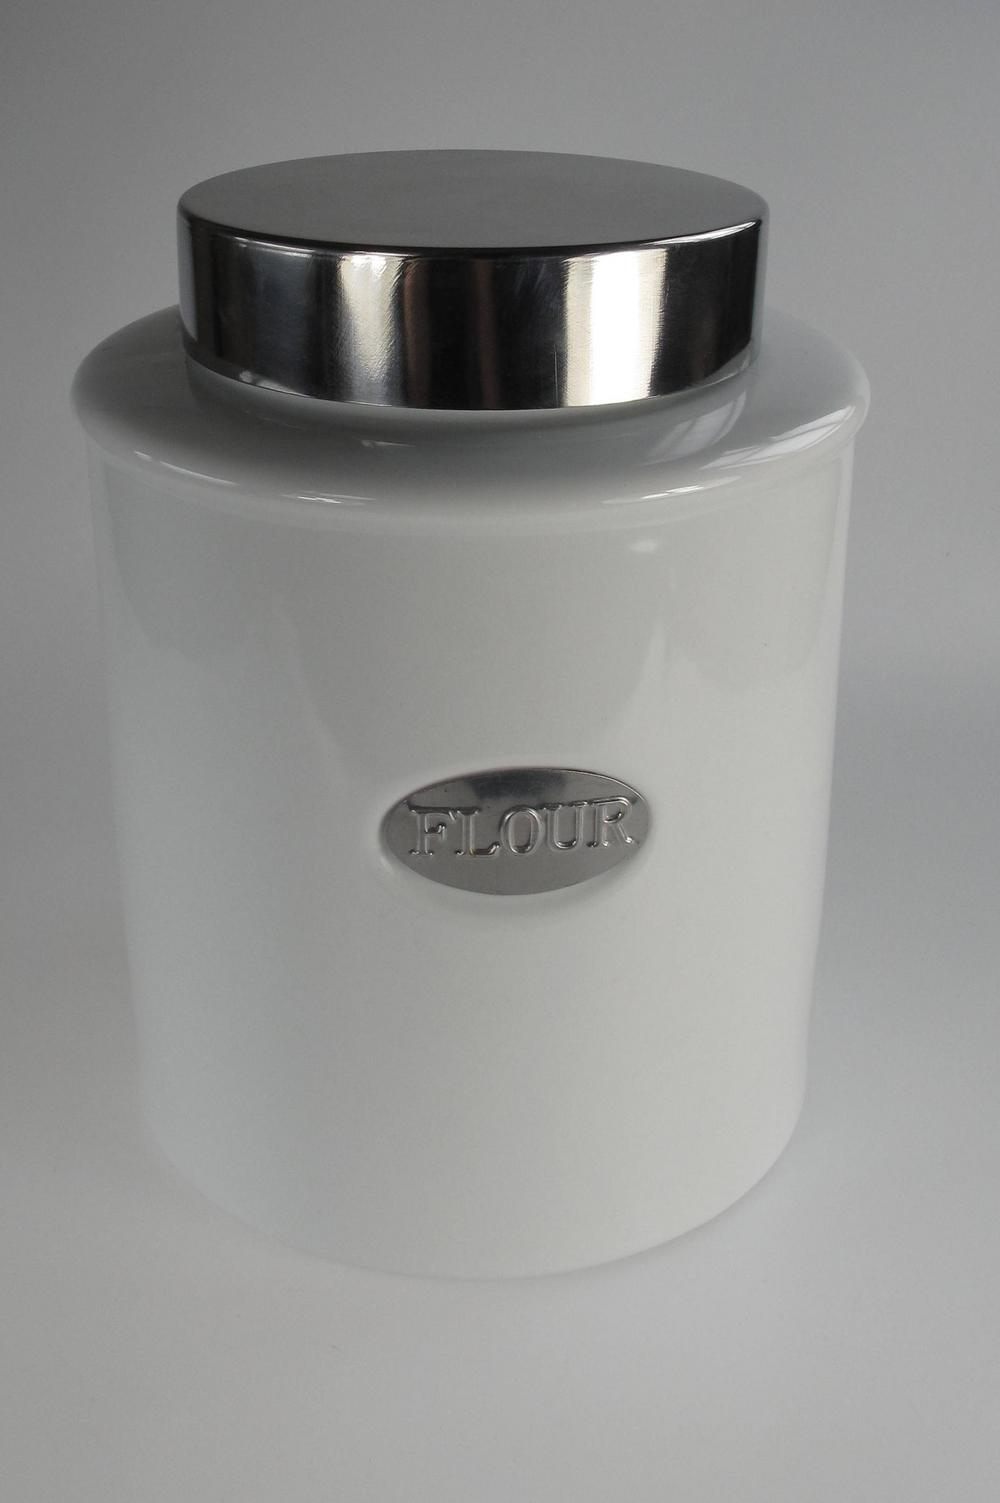 Stone The Crows Flour Canister White Porcelain With Air Tight Lid Silver Panel